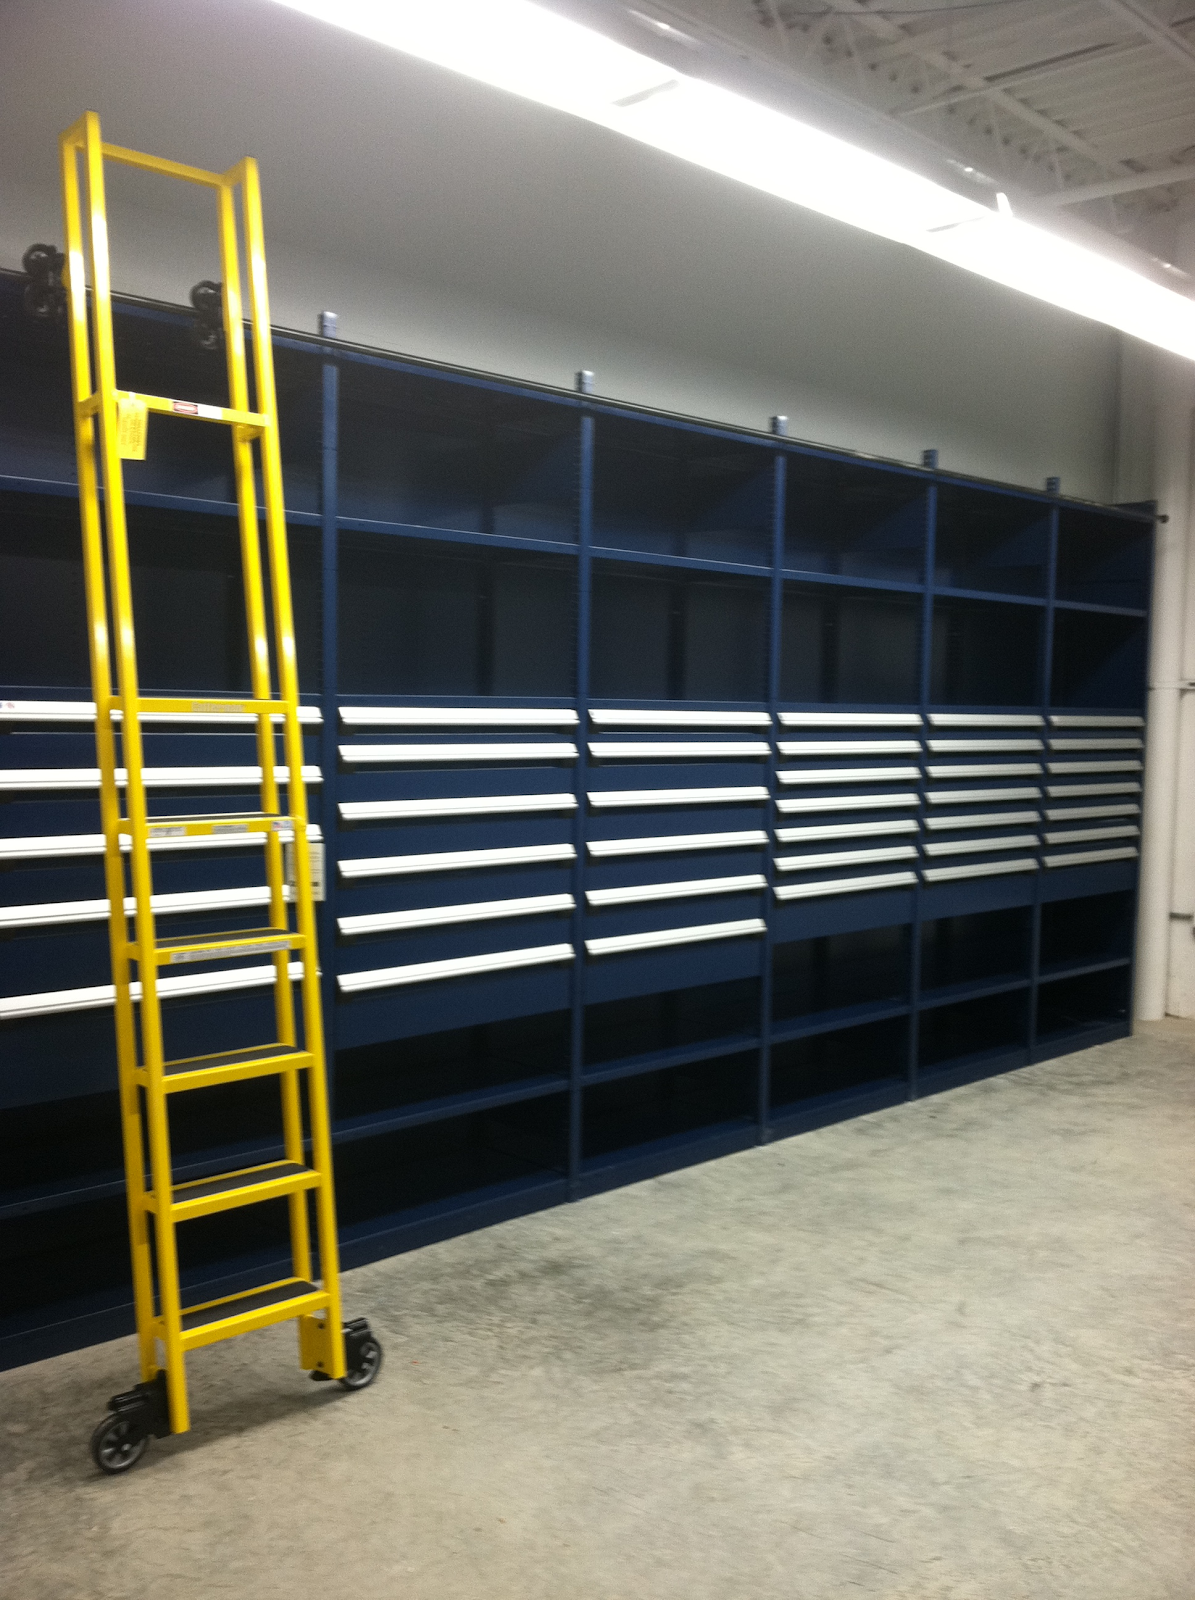 High-rise warehouse shelving with drawers and mobile ladder